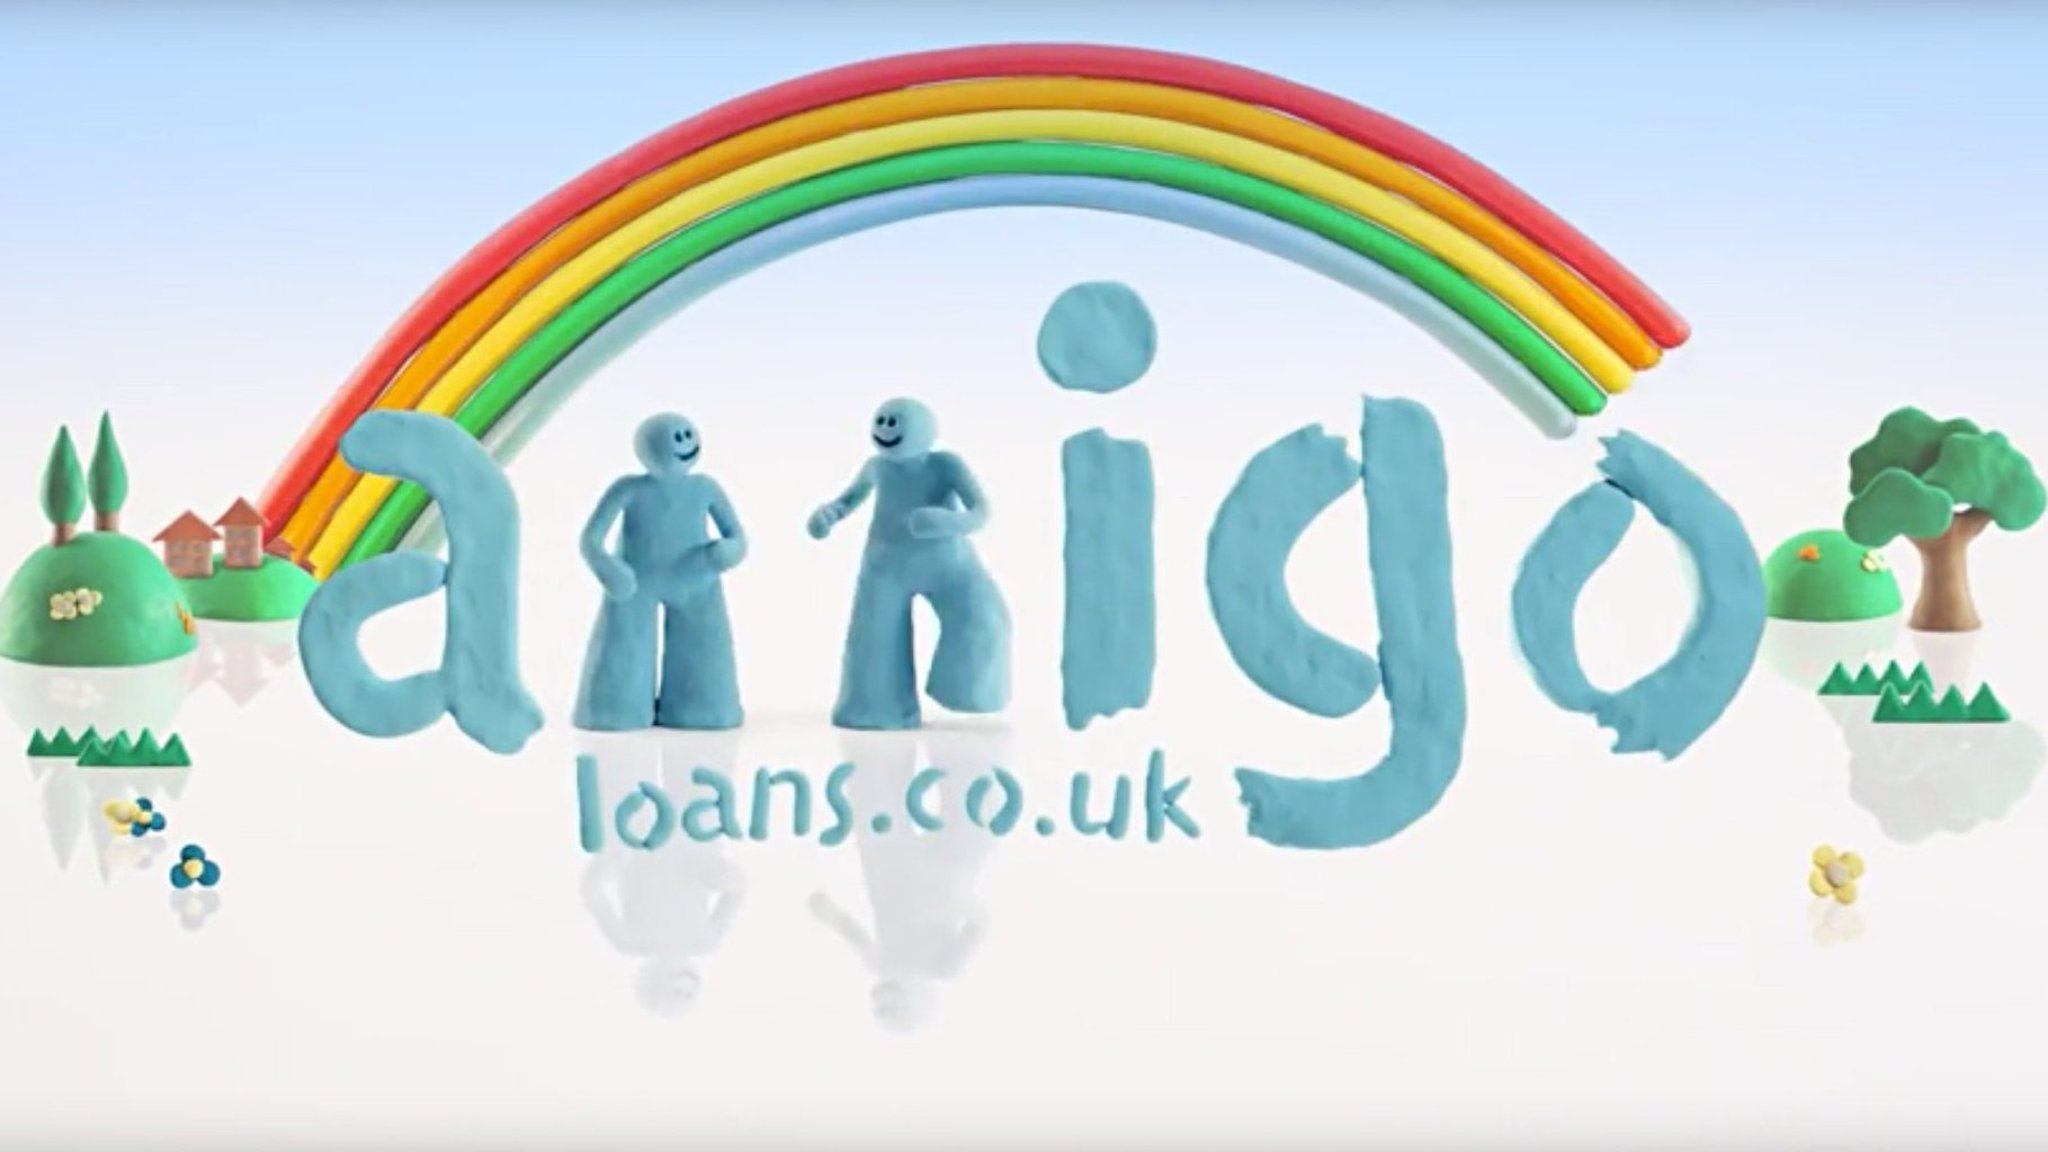 Amigo Loans has put itself up for sale, although it says there's no change for borrowers for now